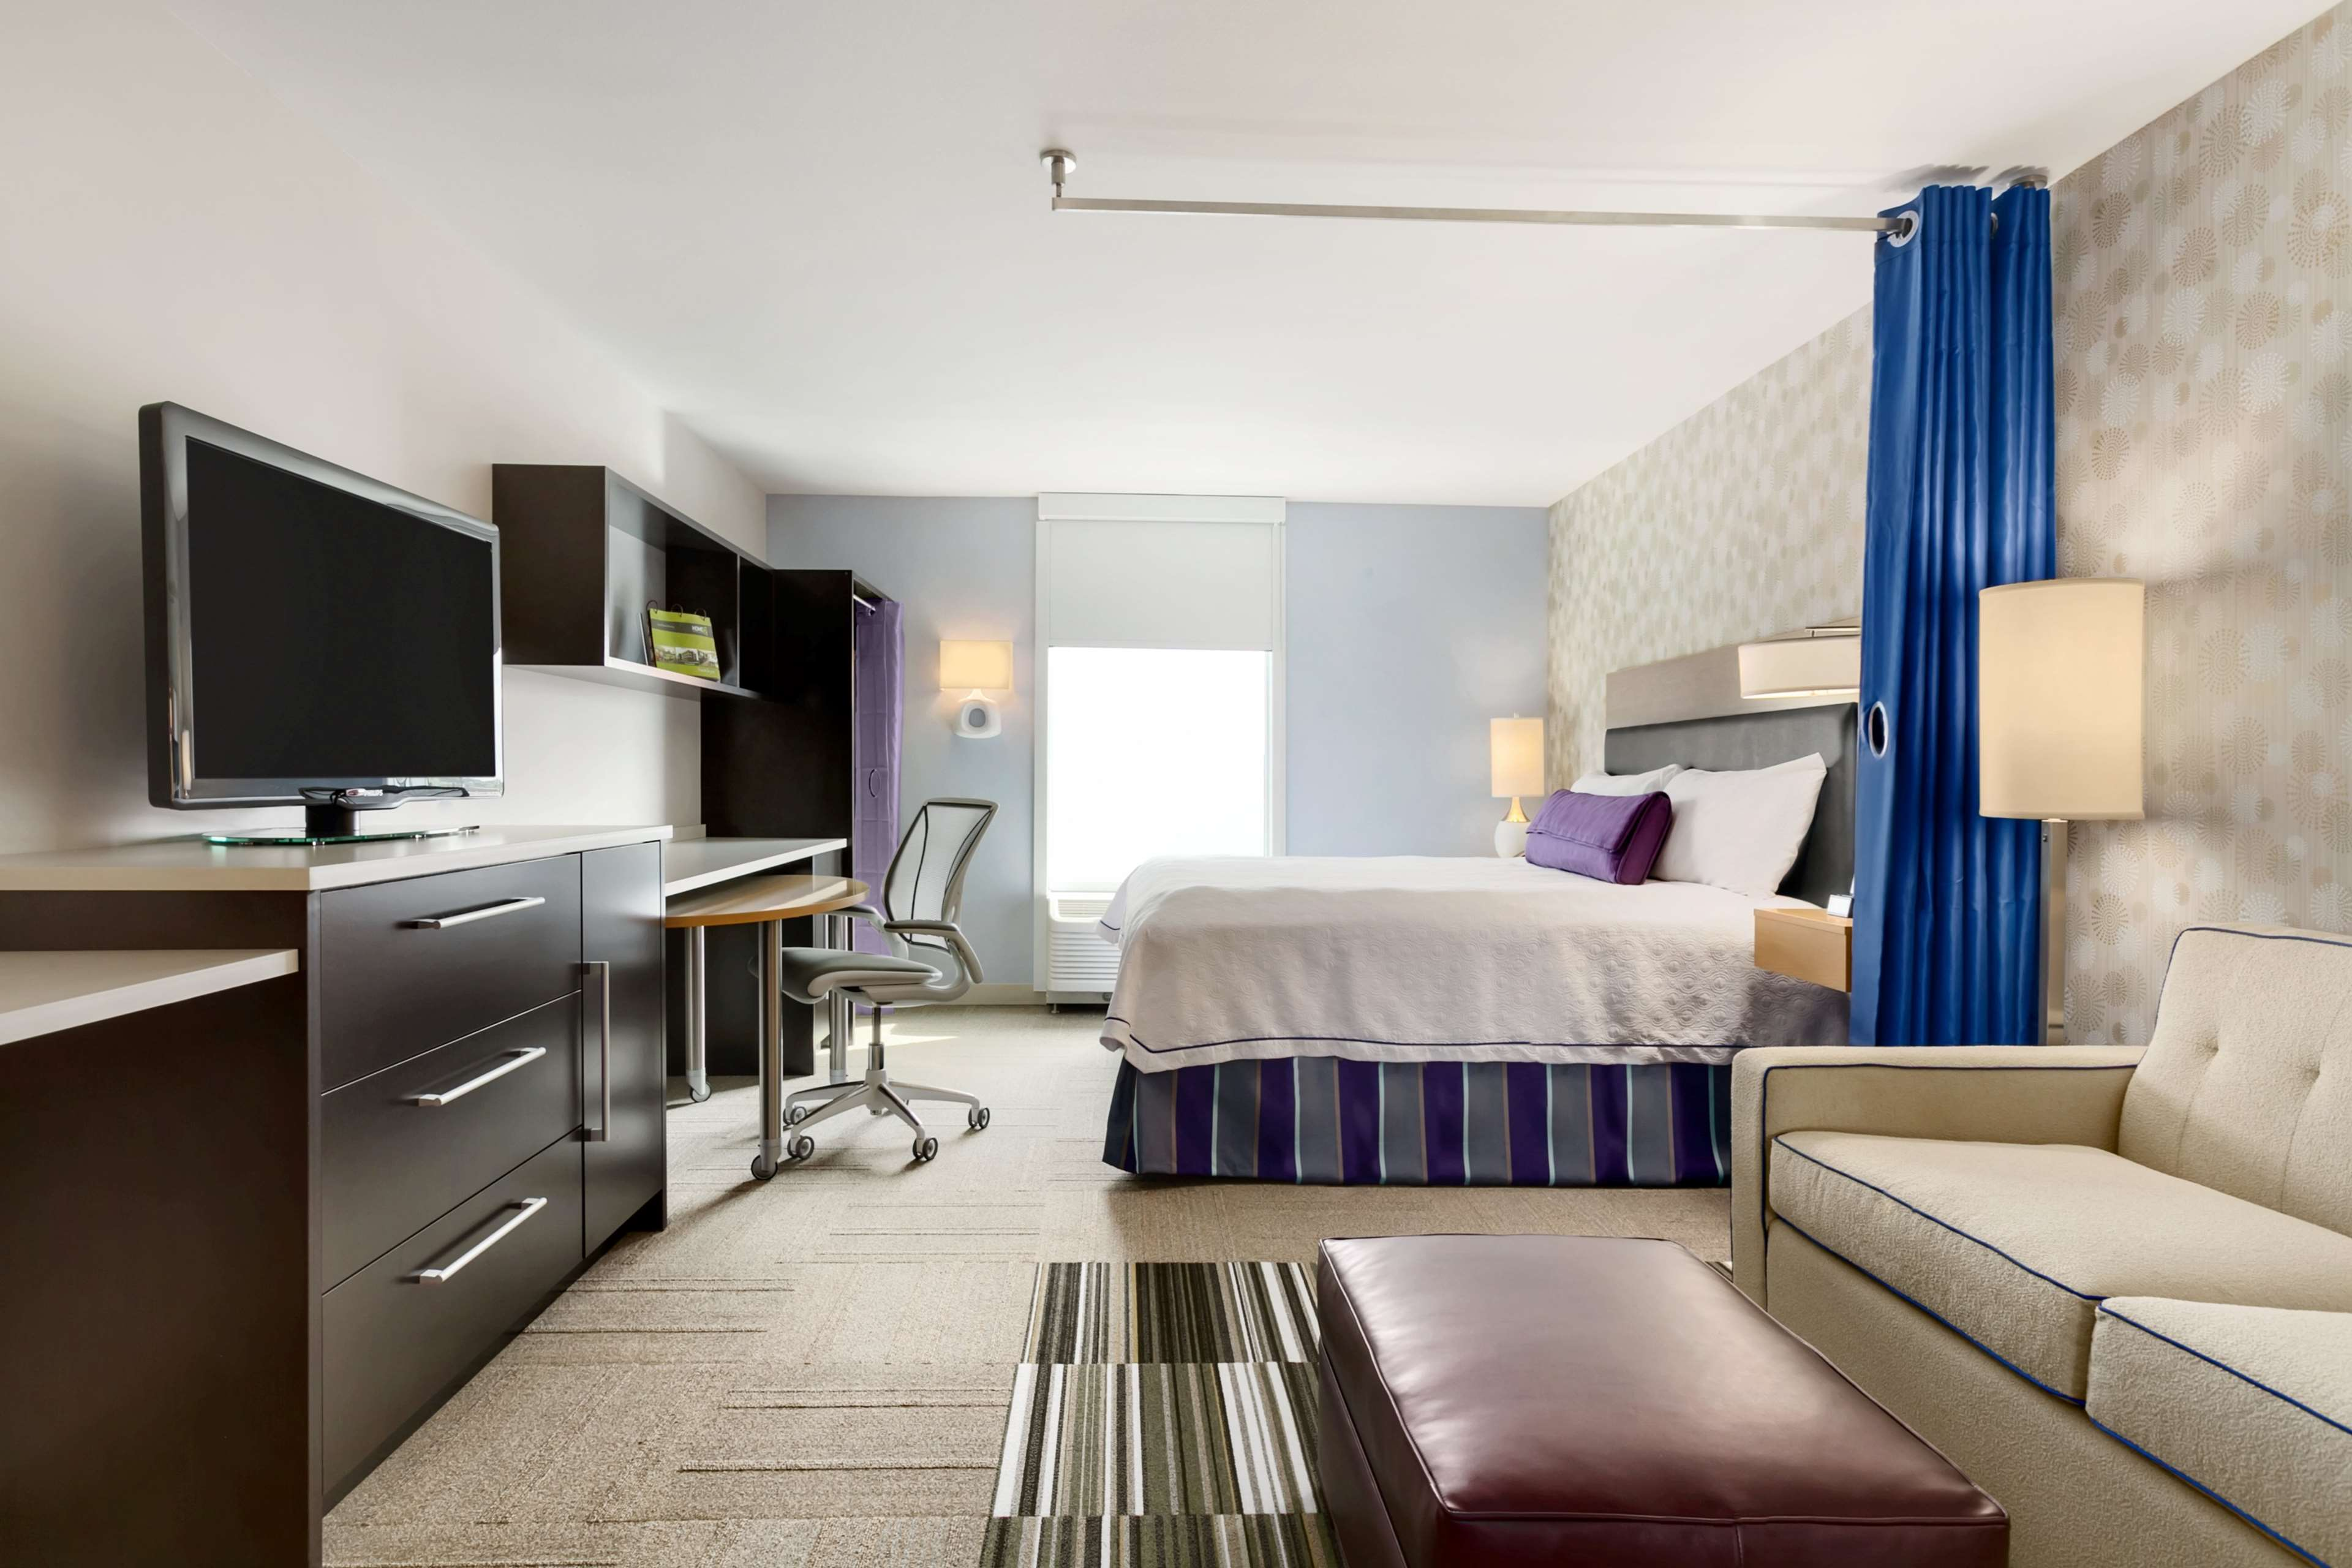 Home2 Suites by Hilton Anchorage/Midtown image 21